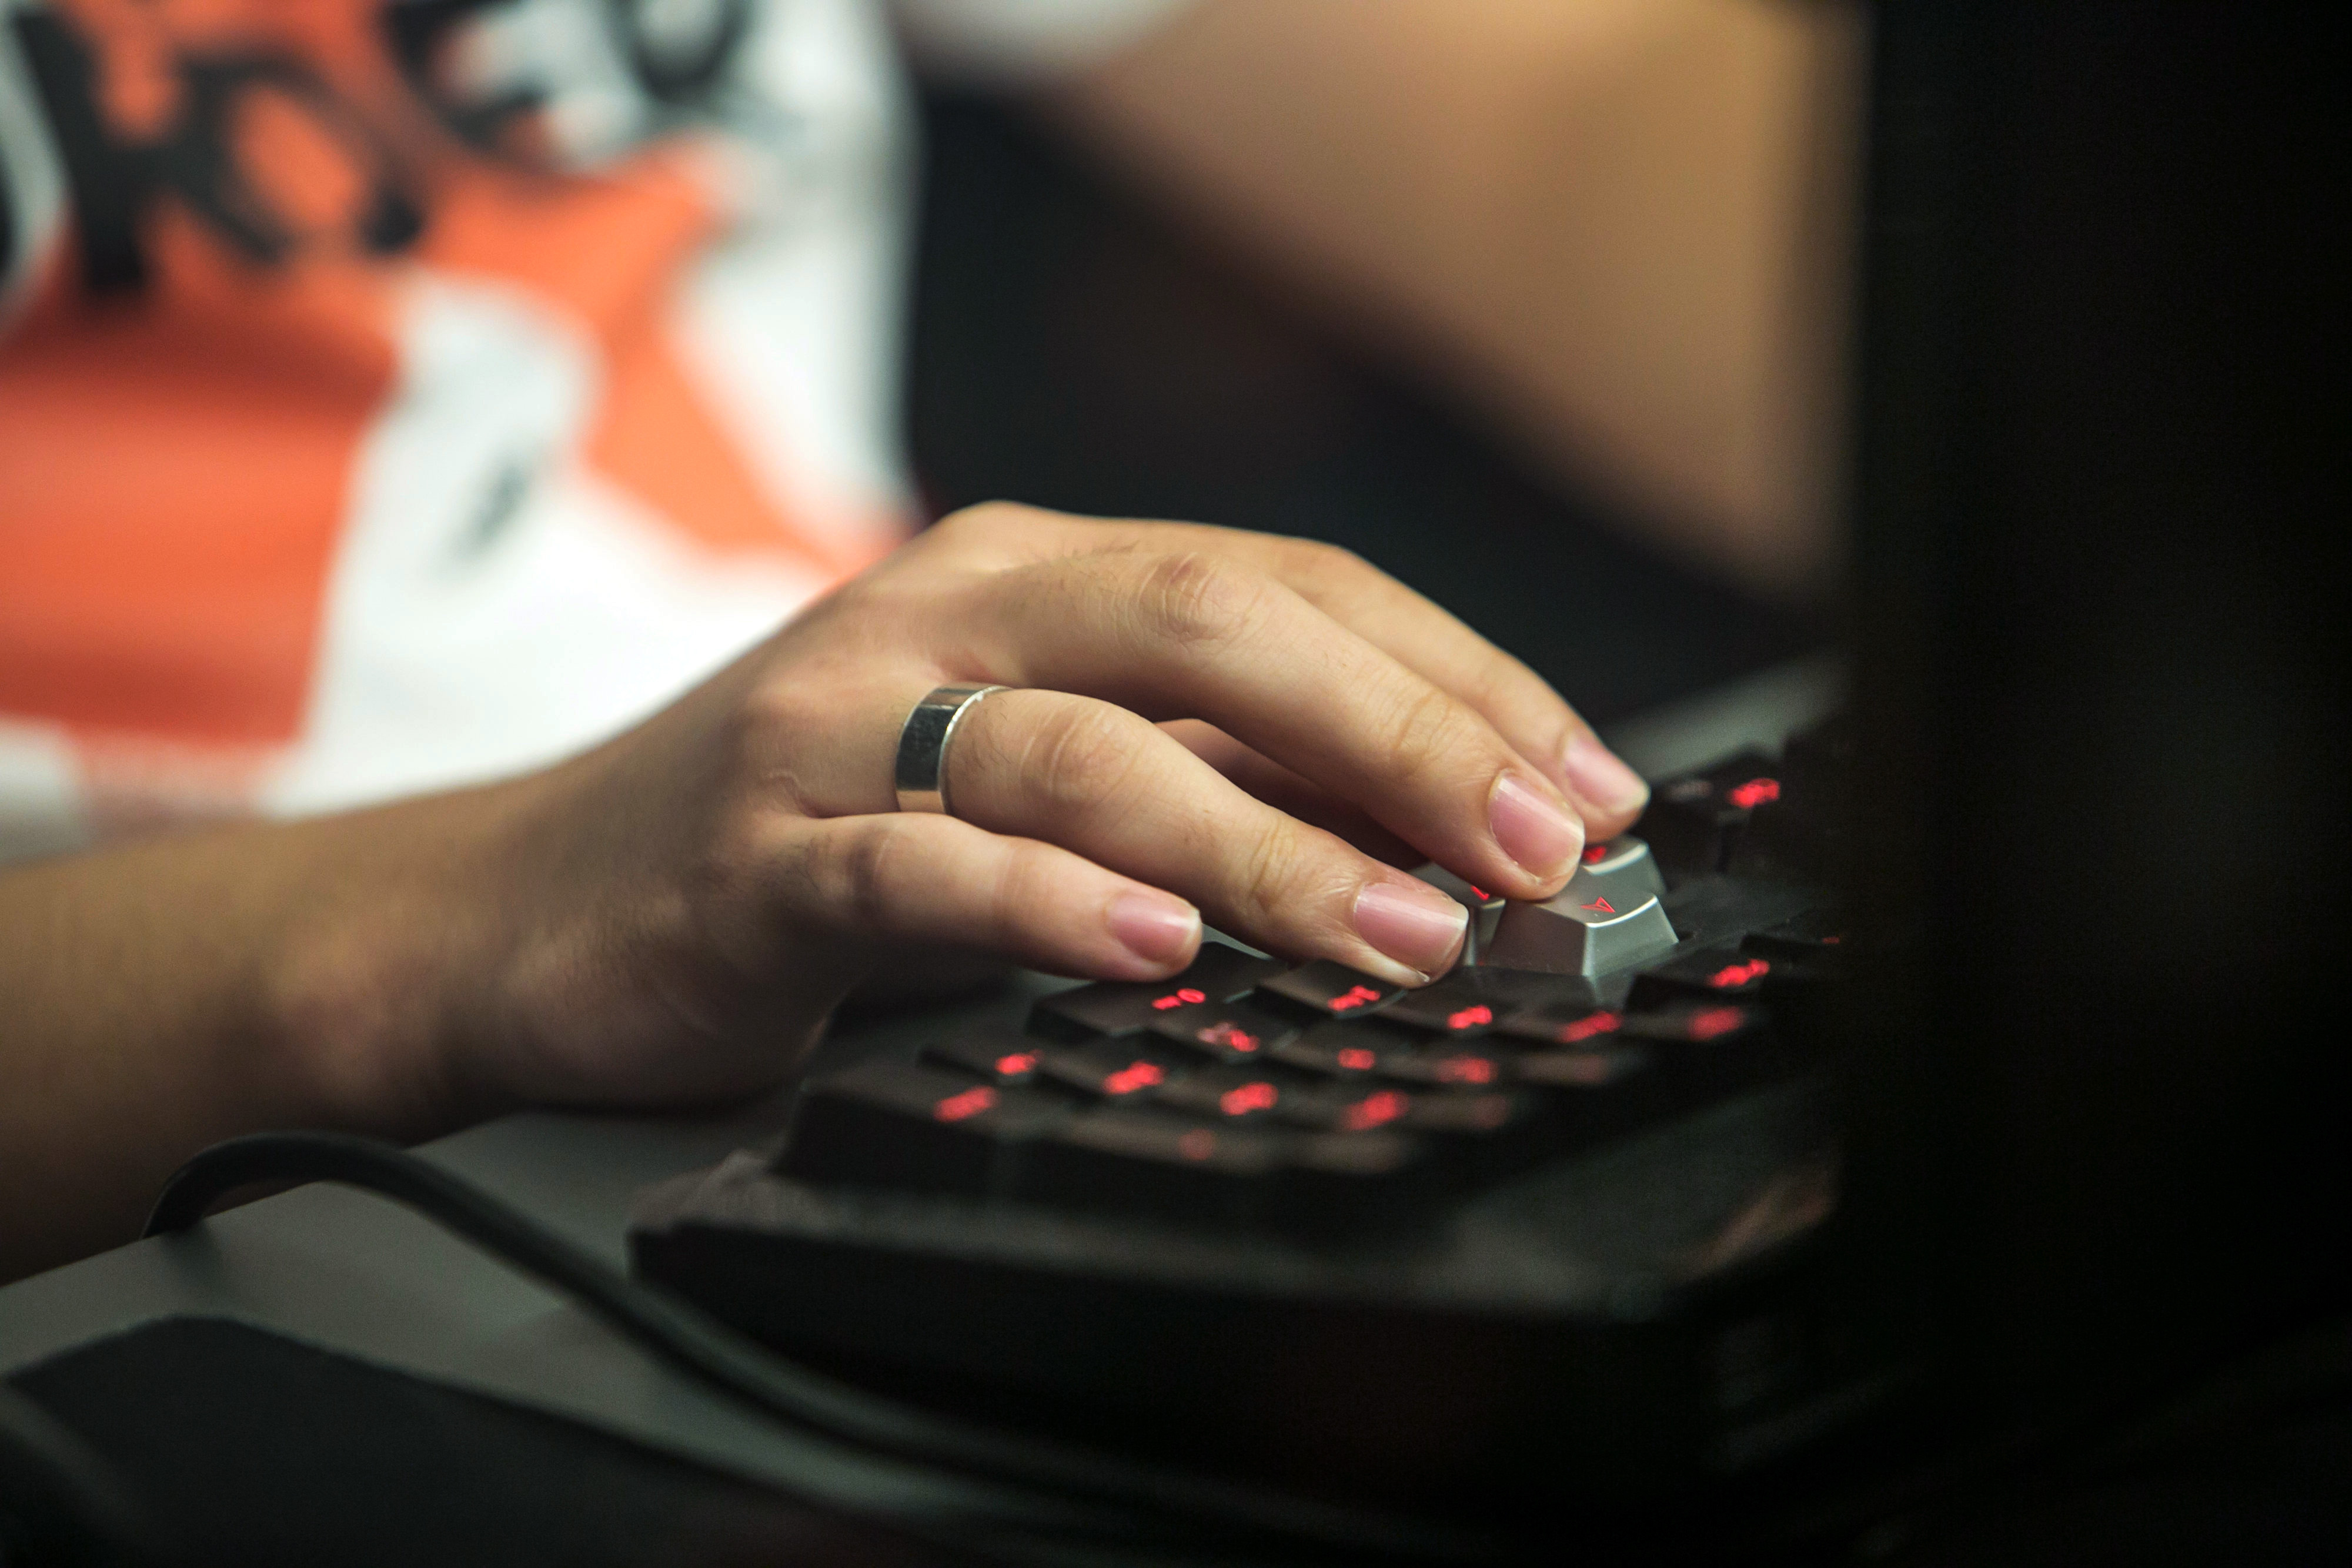 Jeong Se Hyun, a professional video-game player, uses a computer keyboard as he competes against Yang Jin Hyeob, not pictured, during the final round of the Electronic Arts Inc. (EA) Sports FIFA Online Championship at the Nexon Co. e-Sports Stadium in Seoul, South Korea, on Saturday, Oct. 17, 2015.